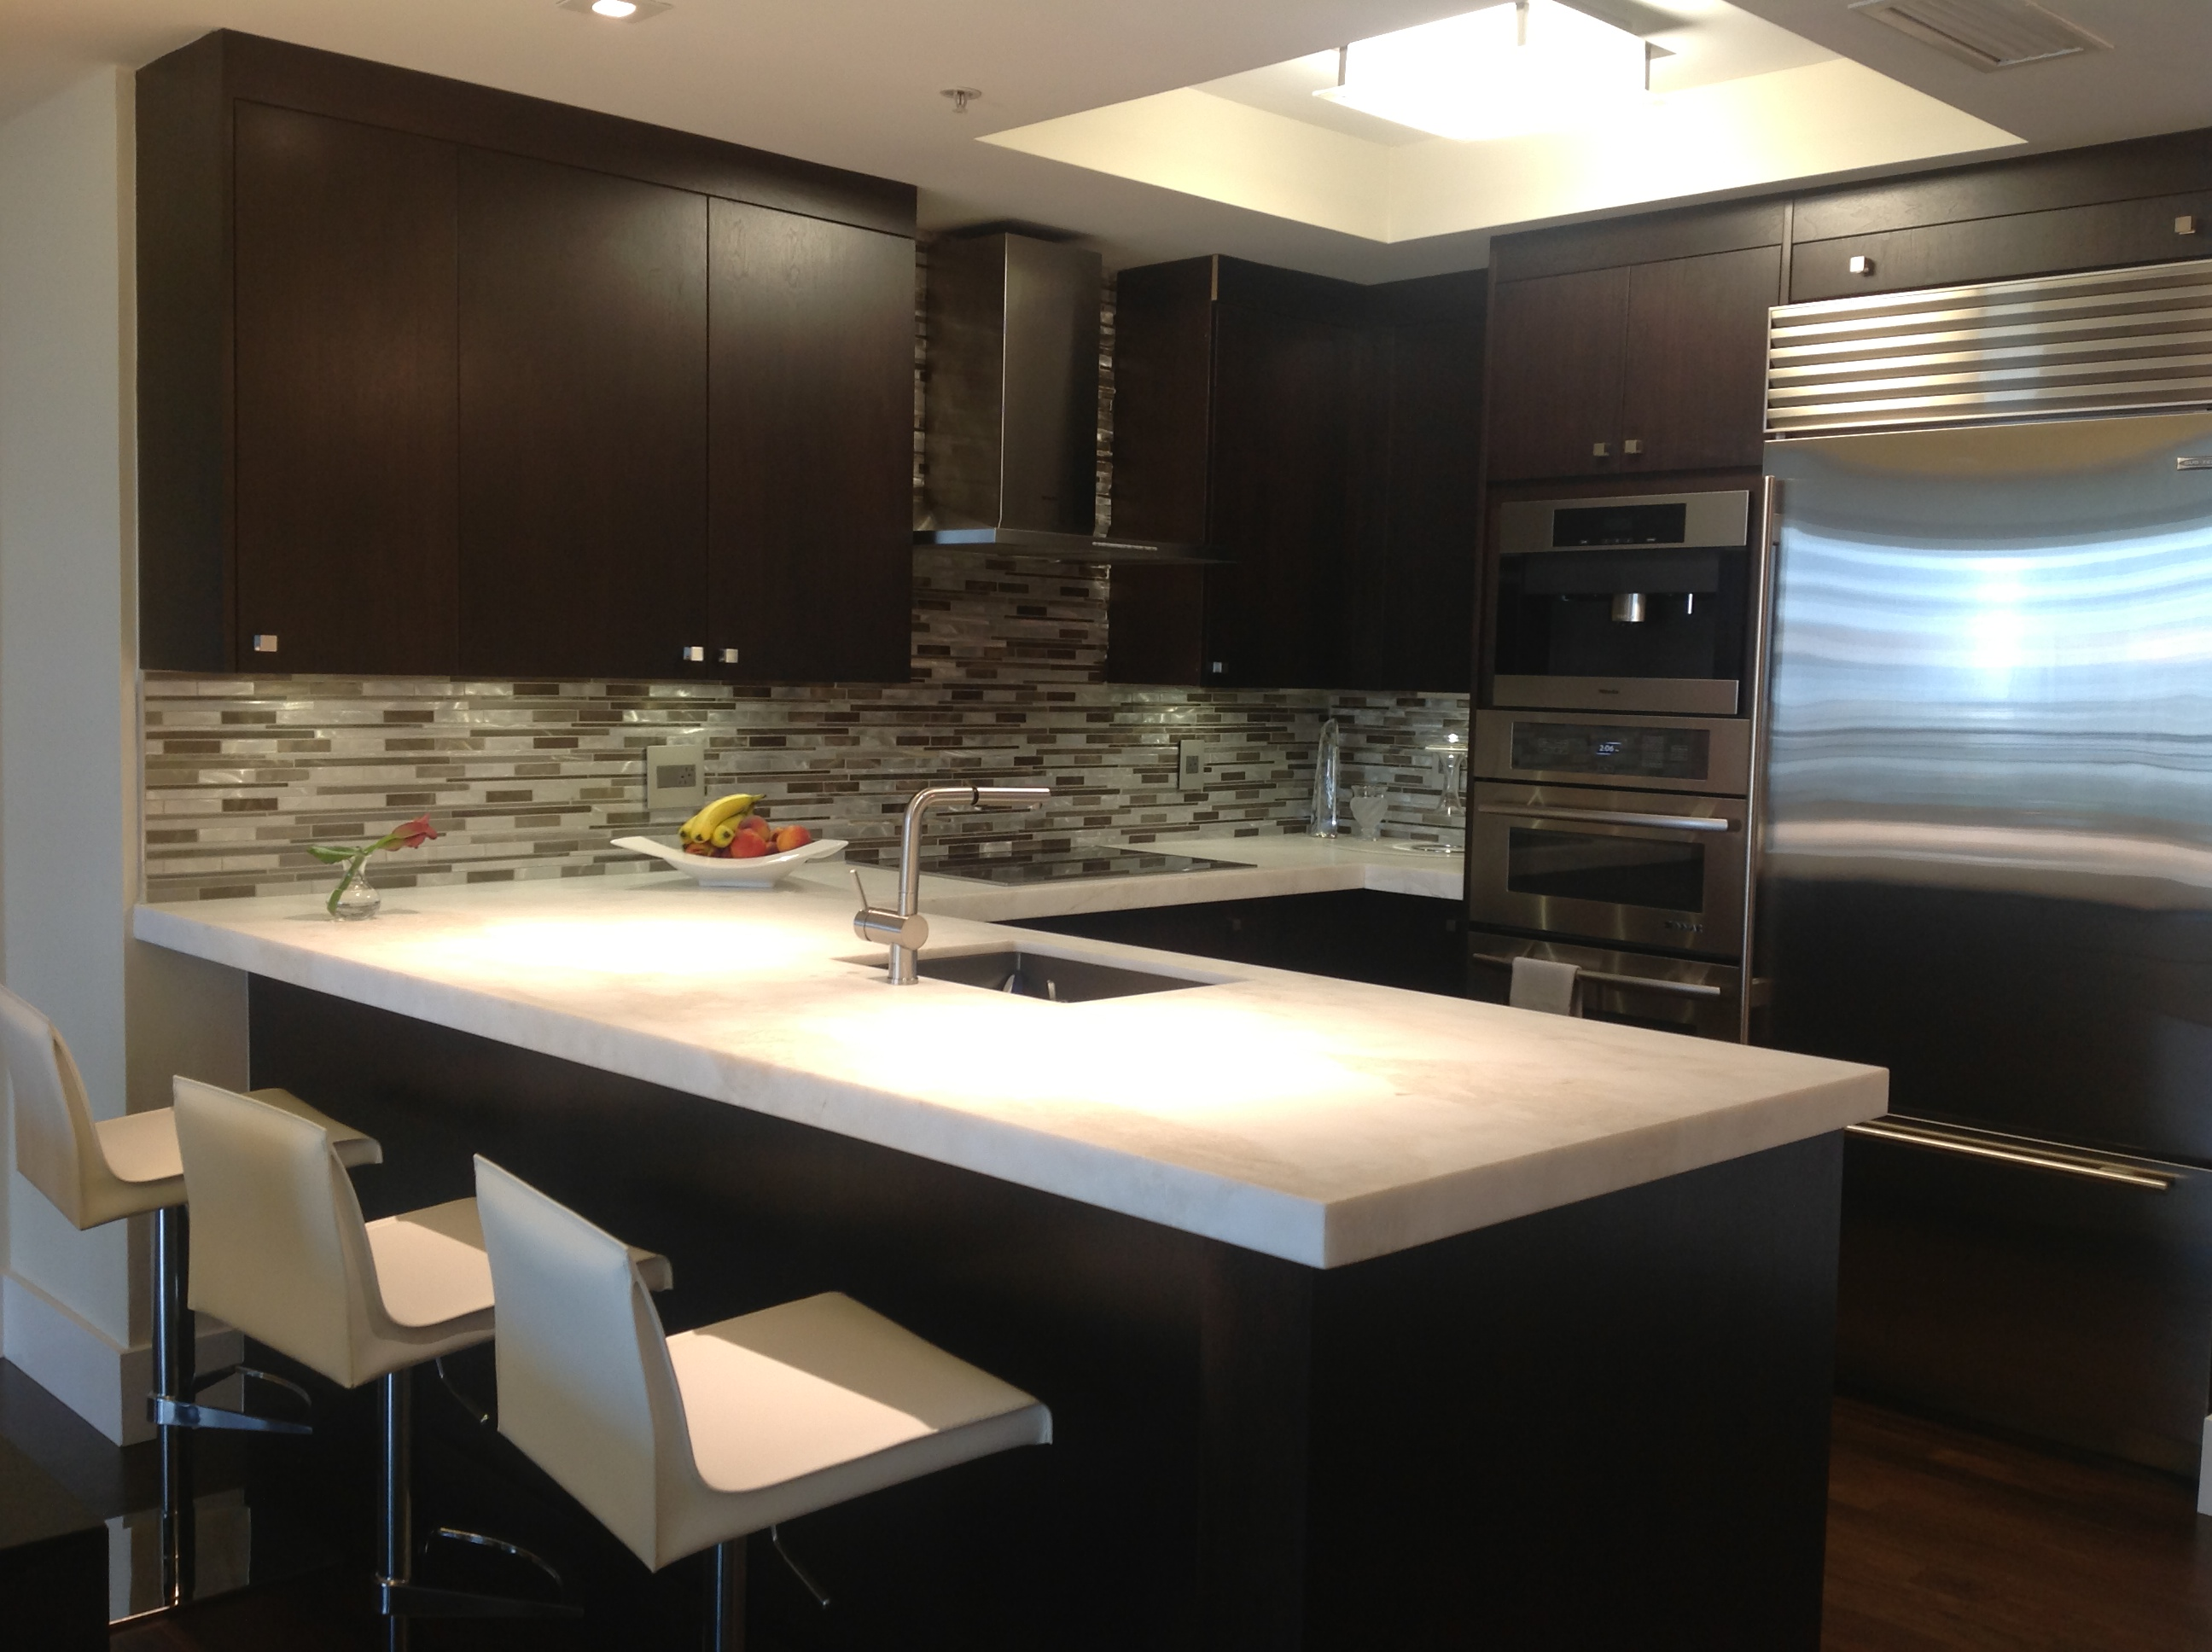 Jandj custom kitchen cabinets company luxurious kitchen for Custom kitchens